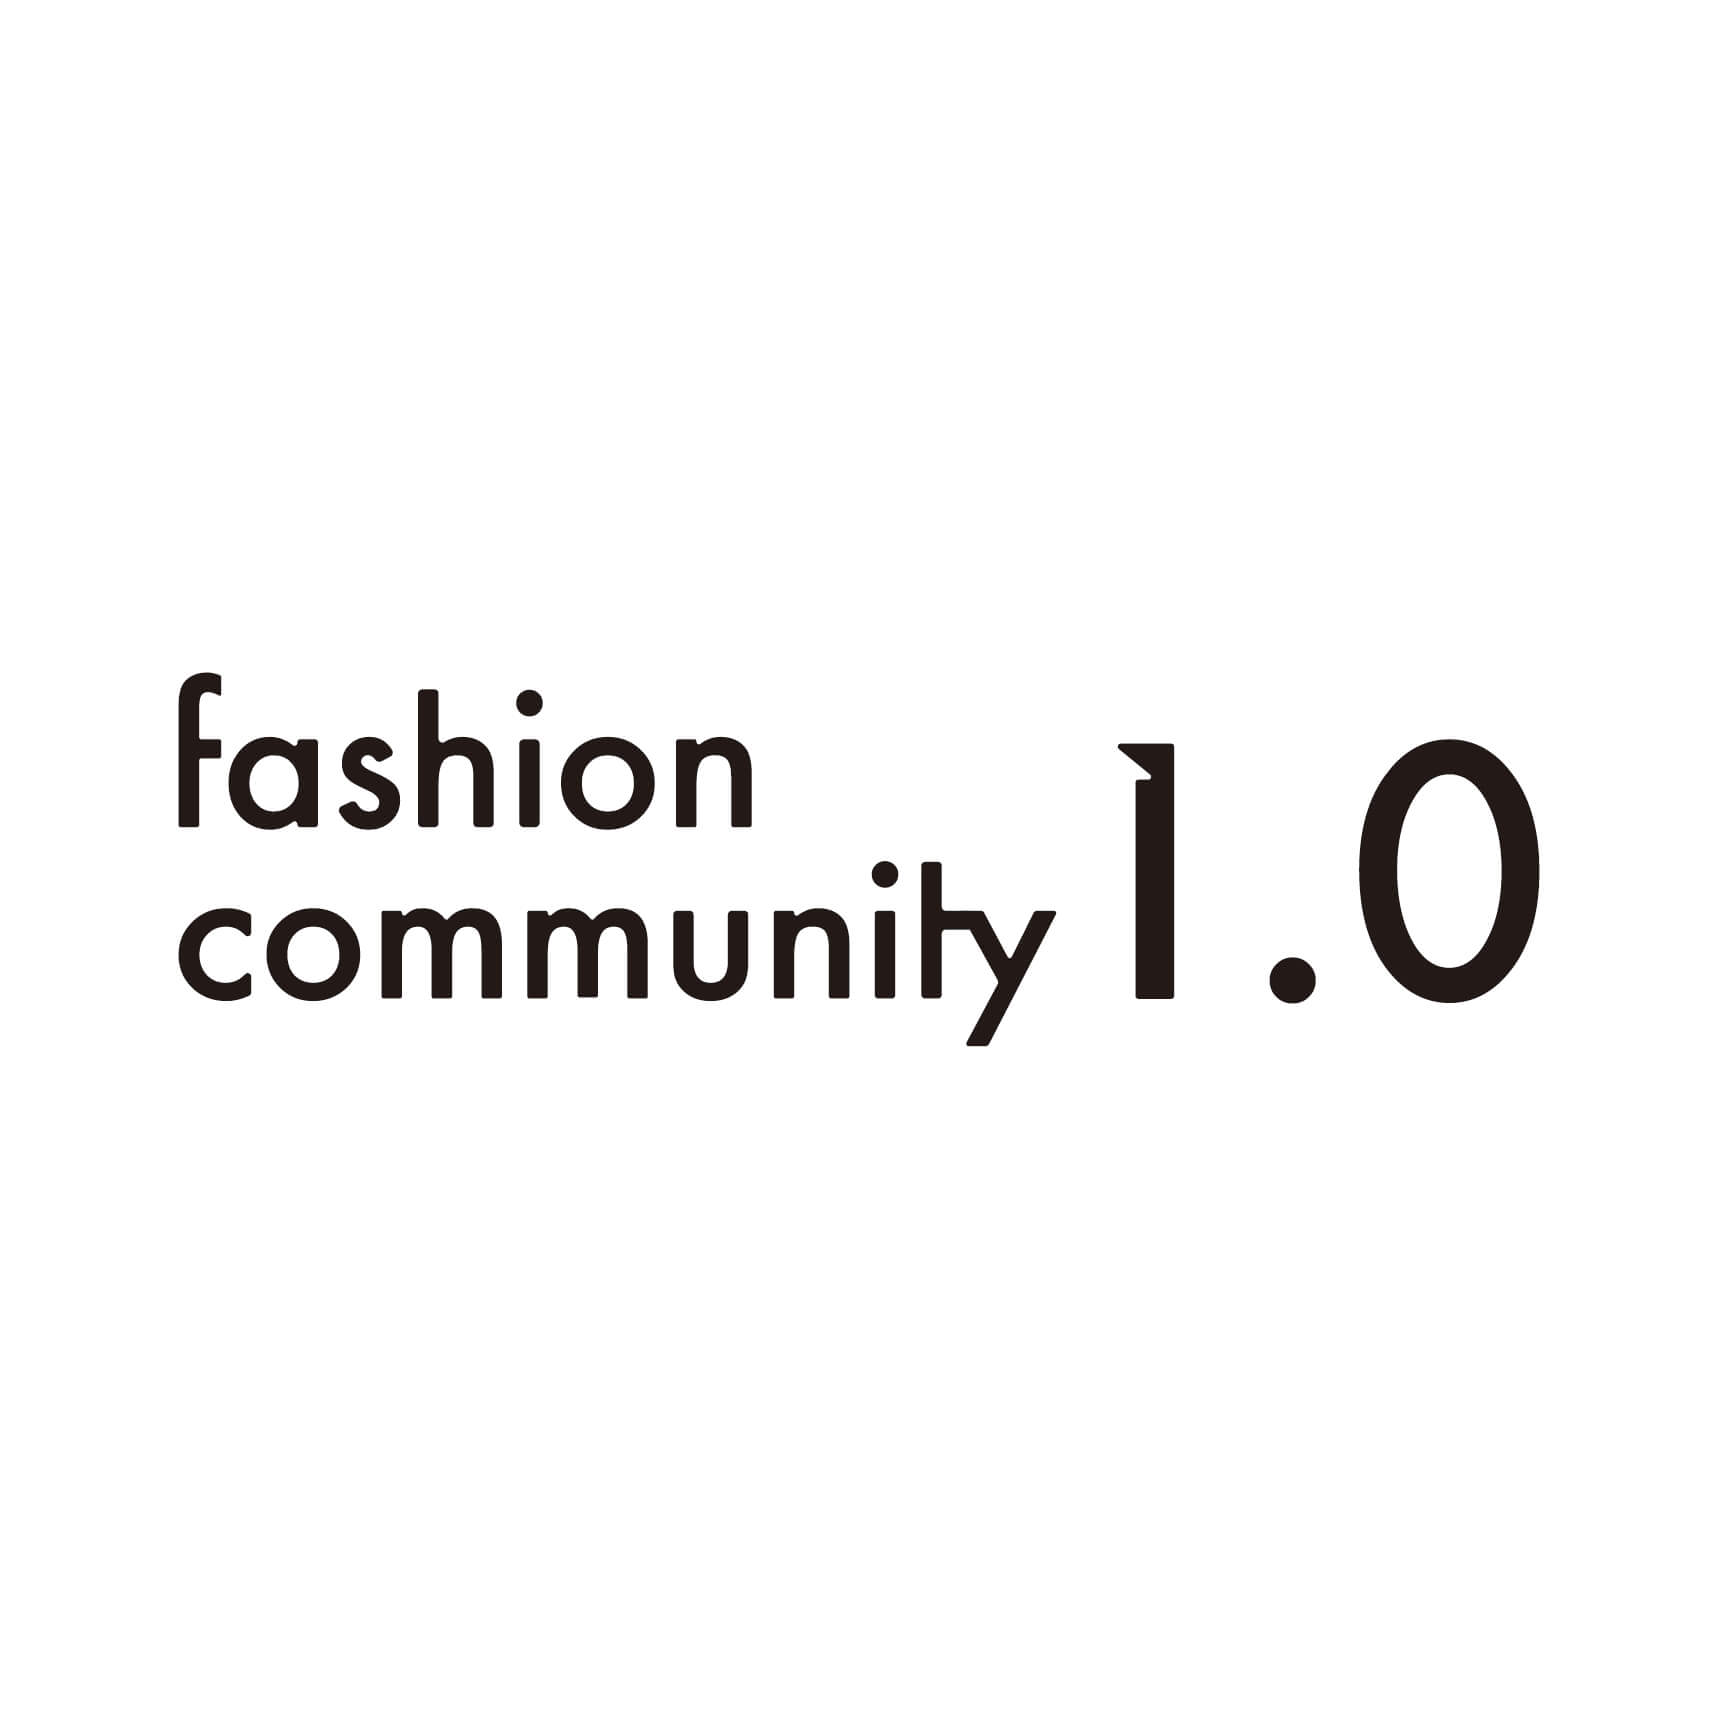 fashion community1.0のロゴ写真